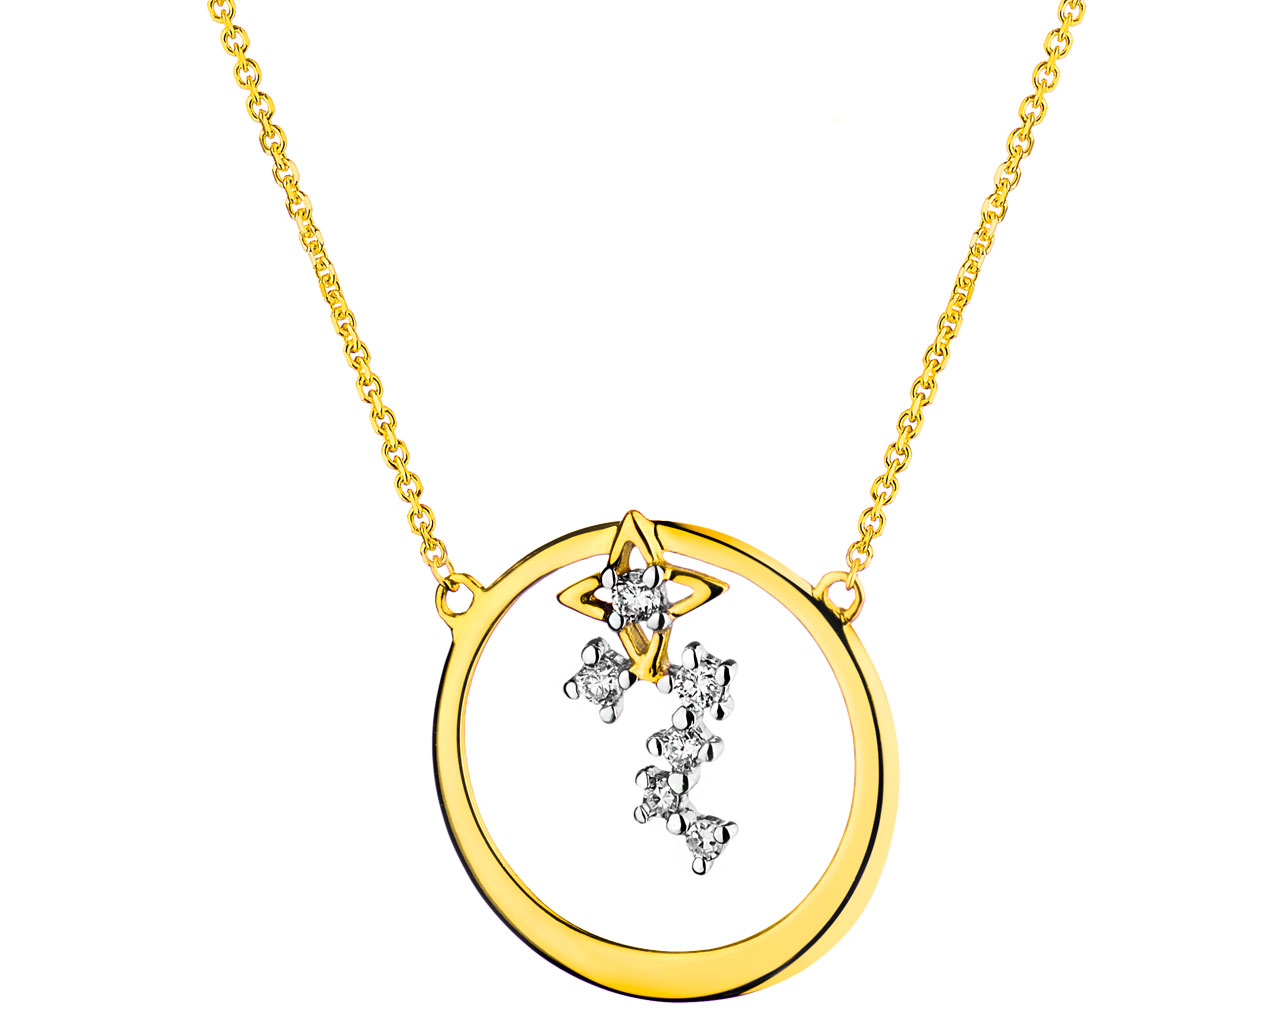 9 K Rhodium-Plated Yellow Gold Necklace with Diamonds